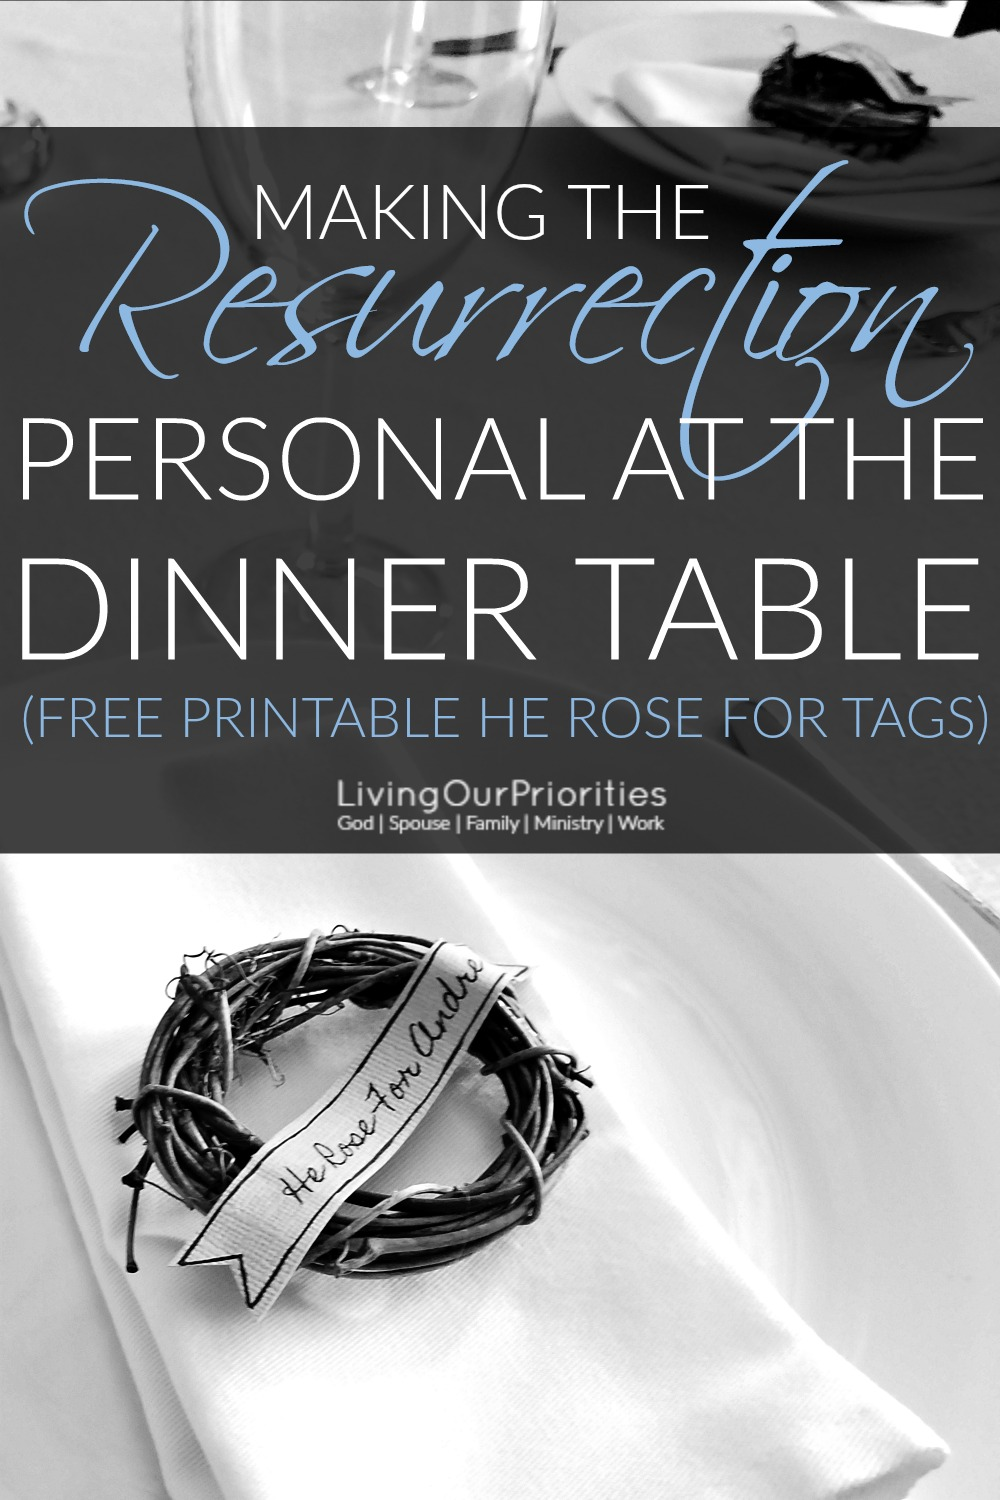 Sunday dinner tends to be a tradition for most families on Resurrection Day! But how many of those gatherings are intentional about making the resurrection personal? In this post we explain how to make the resurrection personal for every person seated at the dinner table!